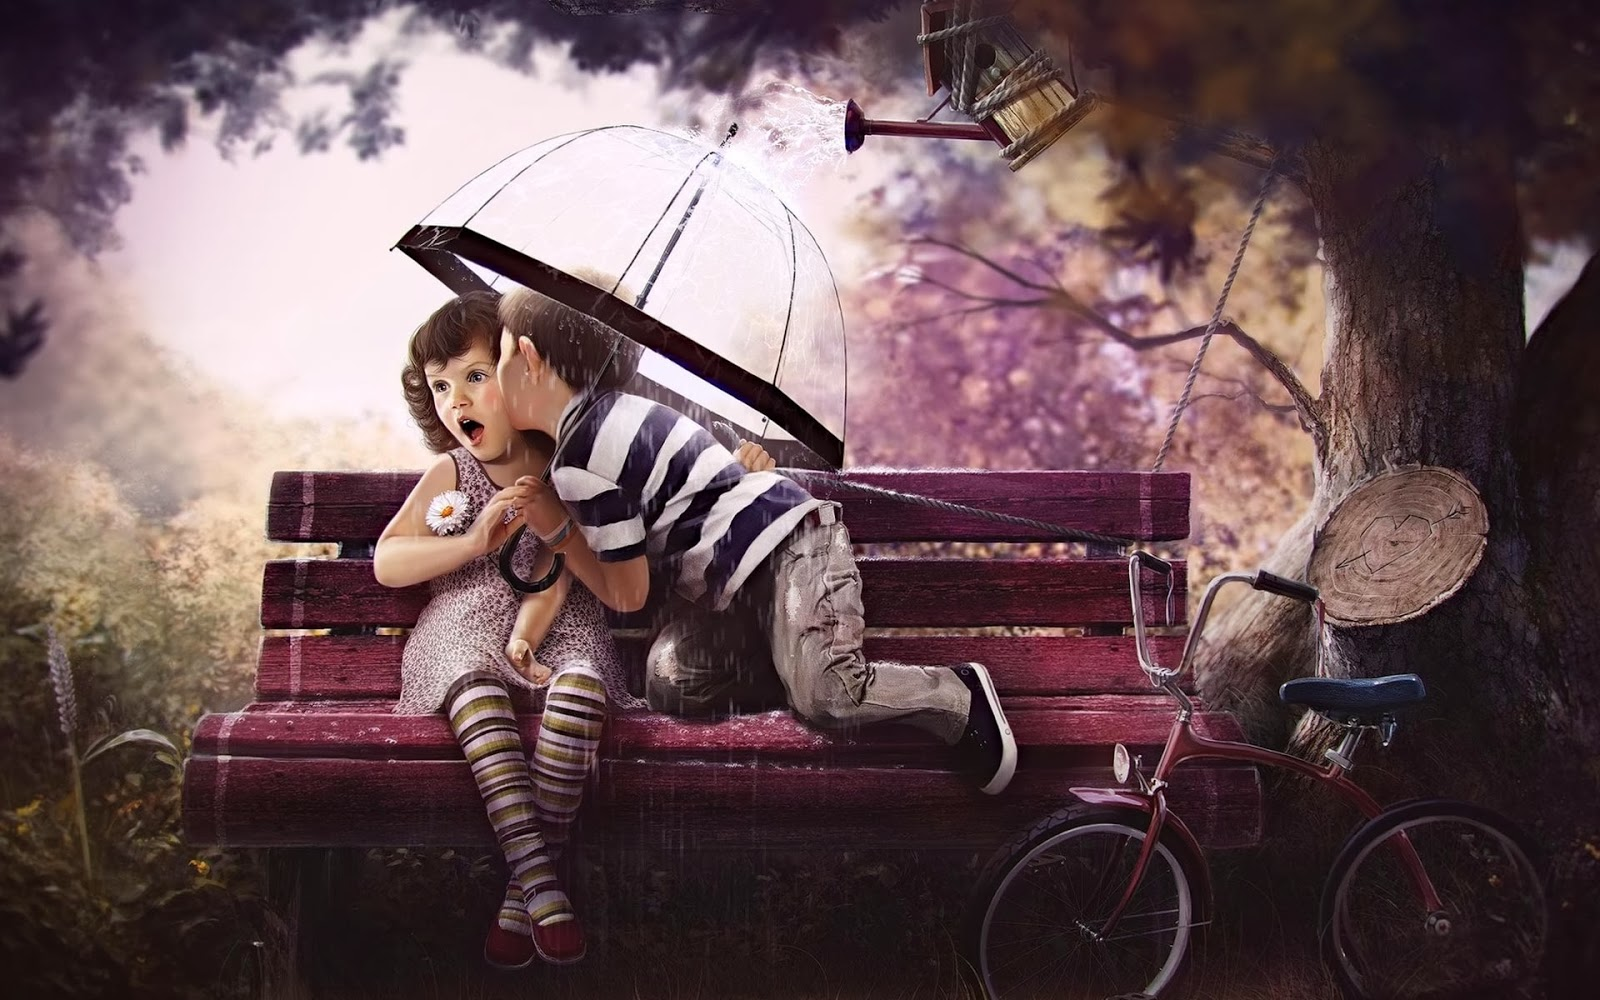 Small Girl Love Wallpaper : cute Little Love couple Pictures HD Free Download PIXHOME